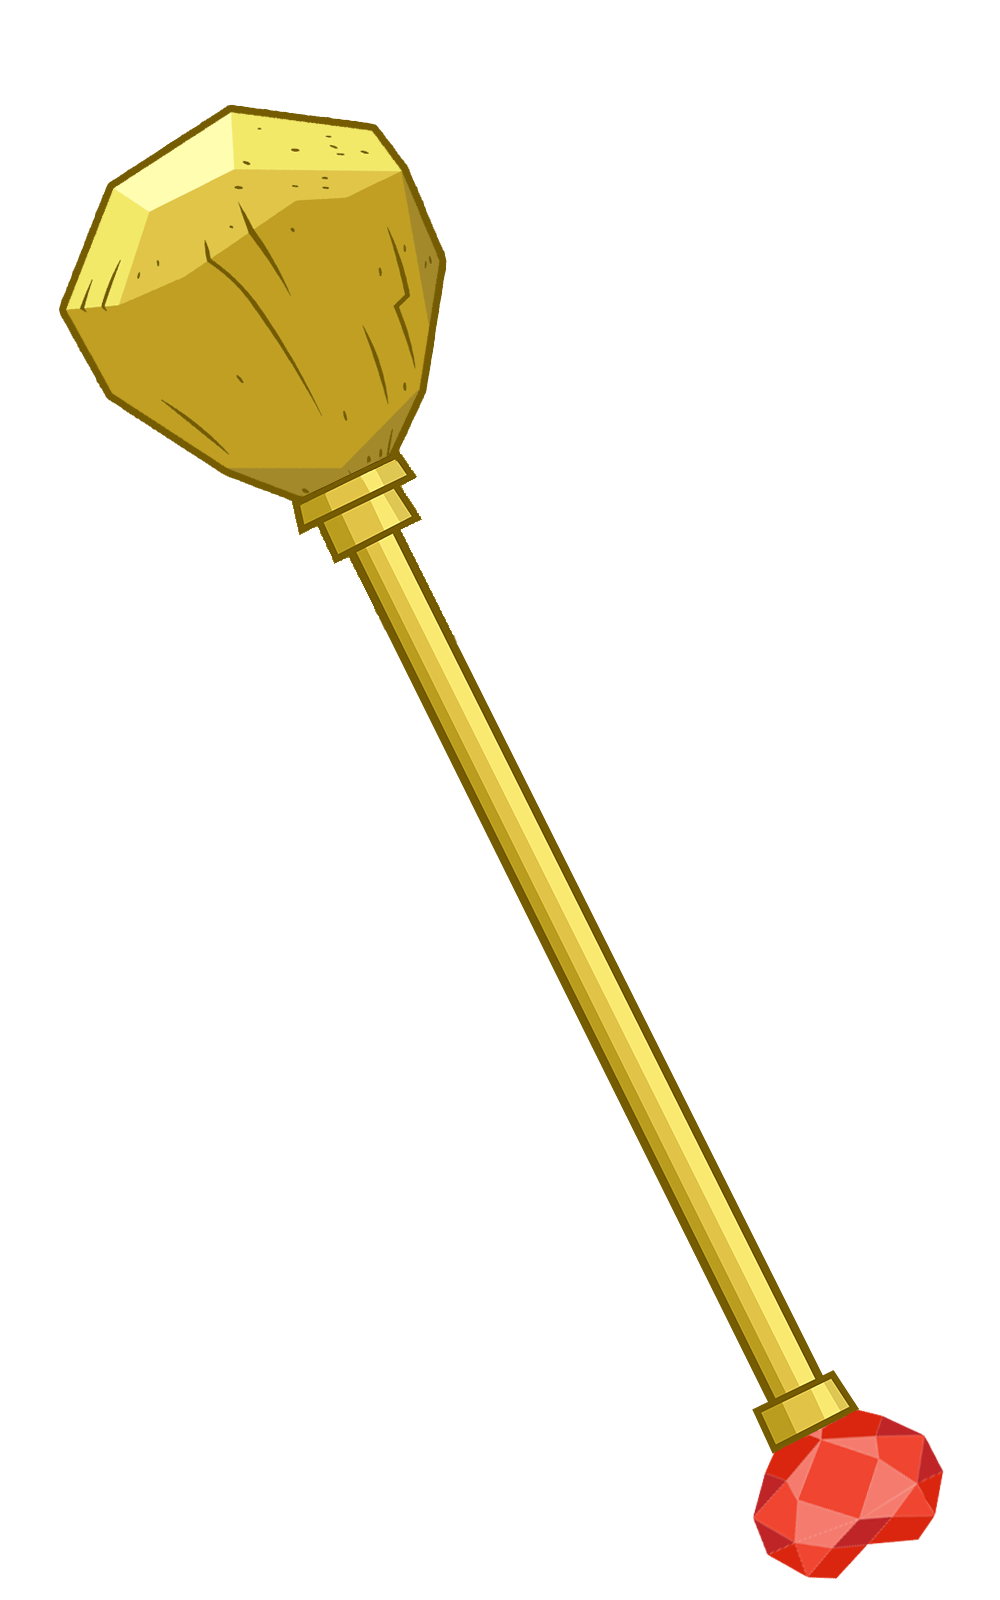 King clipart scepter, King scepter Transparent FREE for.